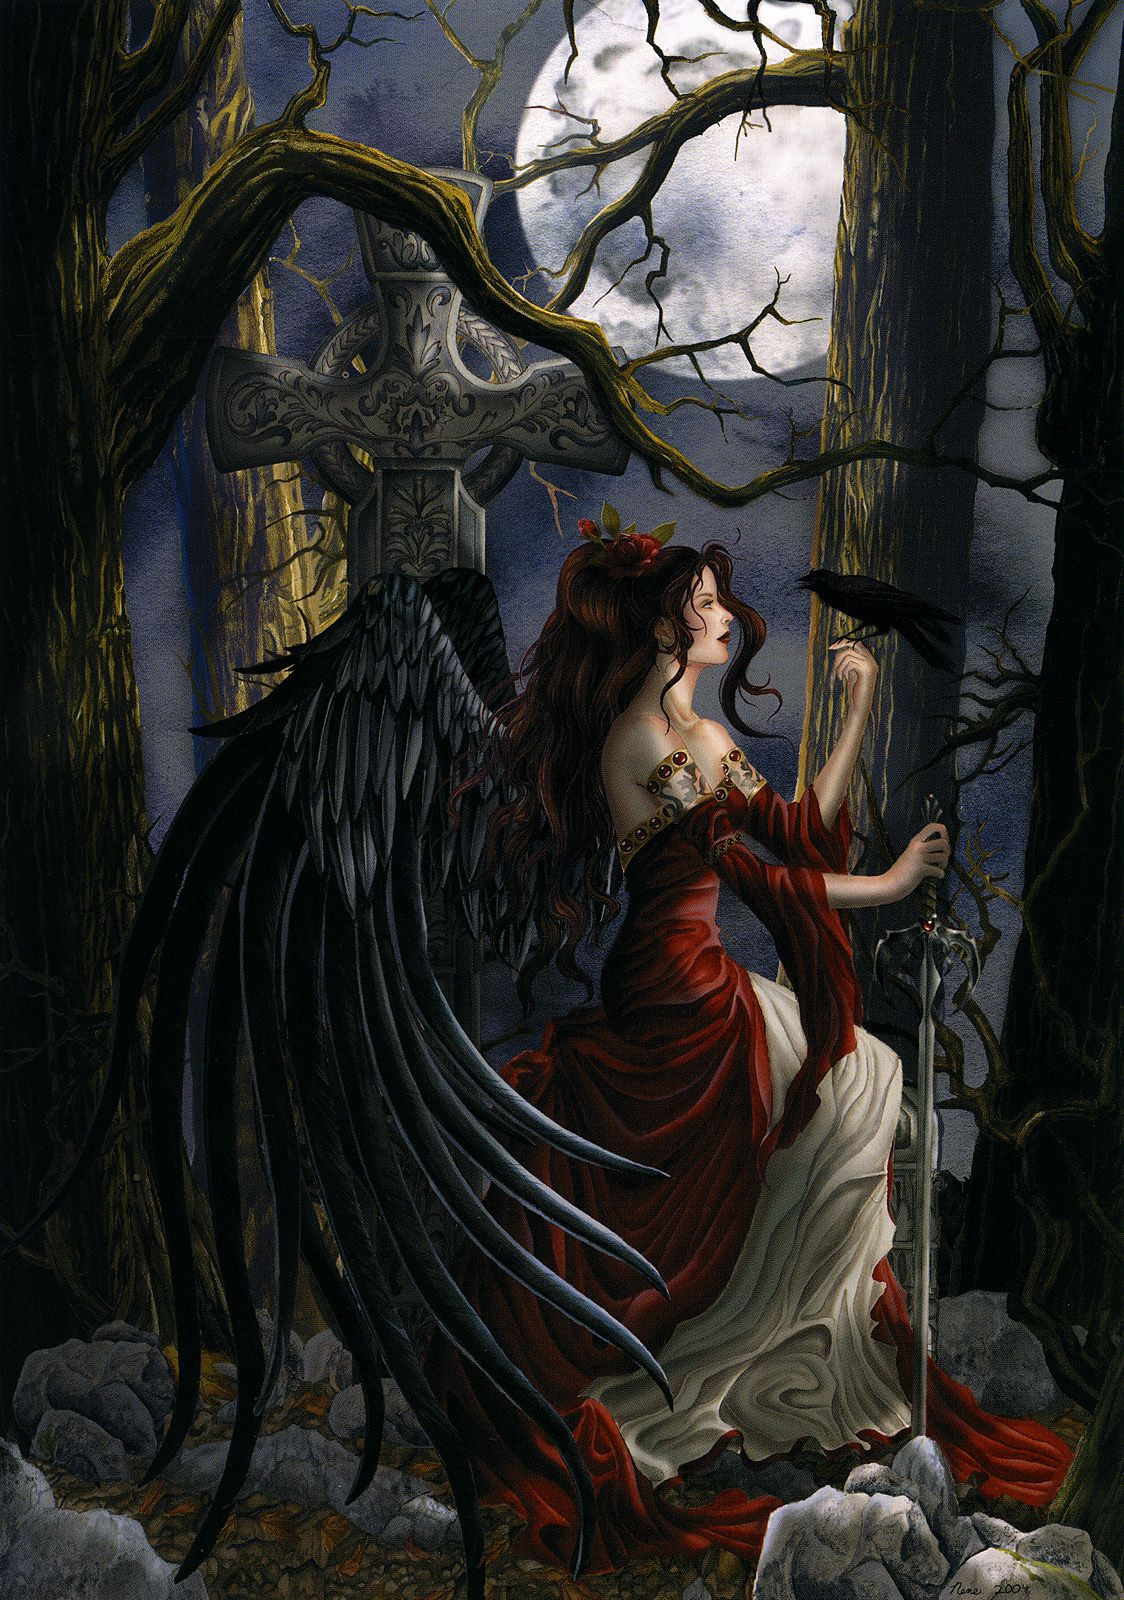 Stunning GOTHIC ANGEL With CROW QUALITY CANVAS PRINT A2 Fantasty Poster